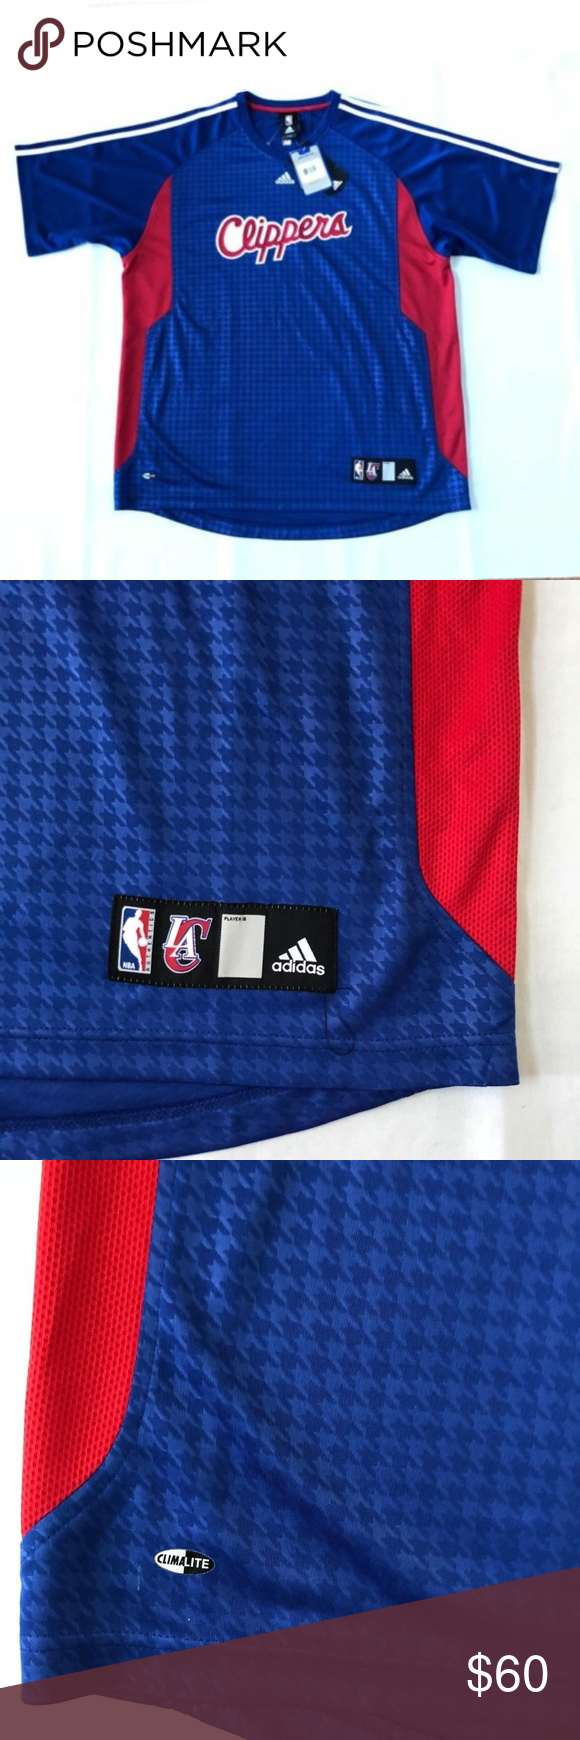 new products 3f669 60710 Adidas Men s Basketball Clippers Tee Shirt Size XL Men s Adidas Los Angeles  LA Clippers NBA Basketball Tee Shirt Short Sleeve Size XL XLarge New with  tag ...